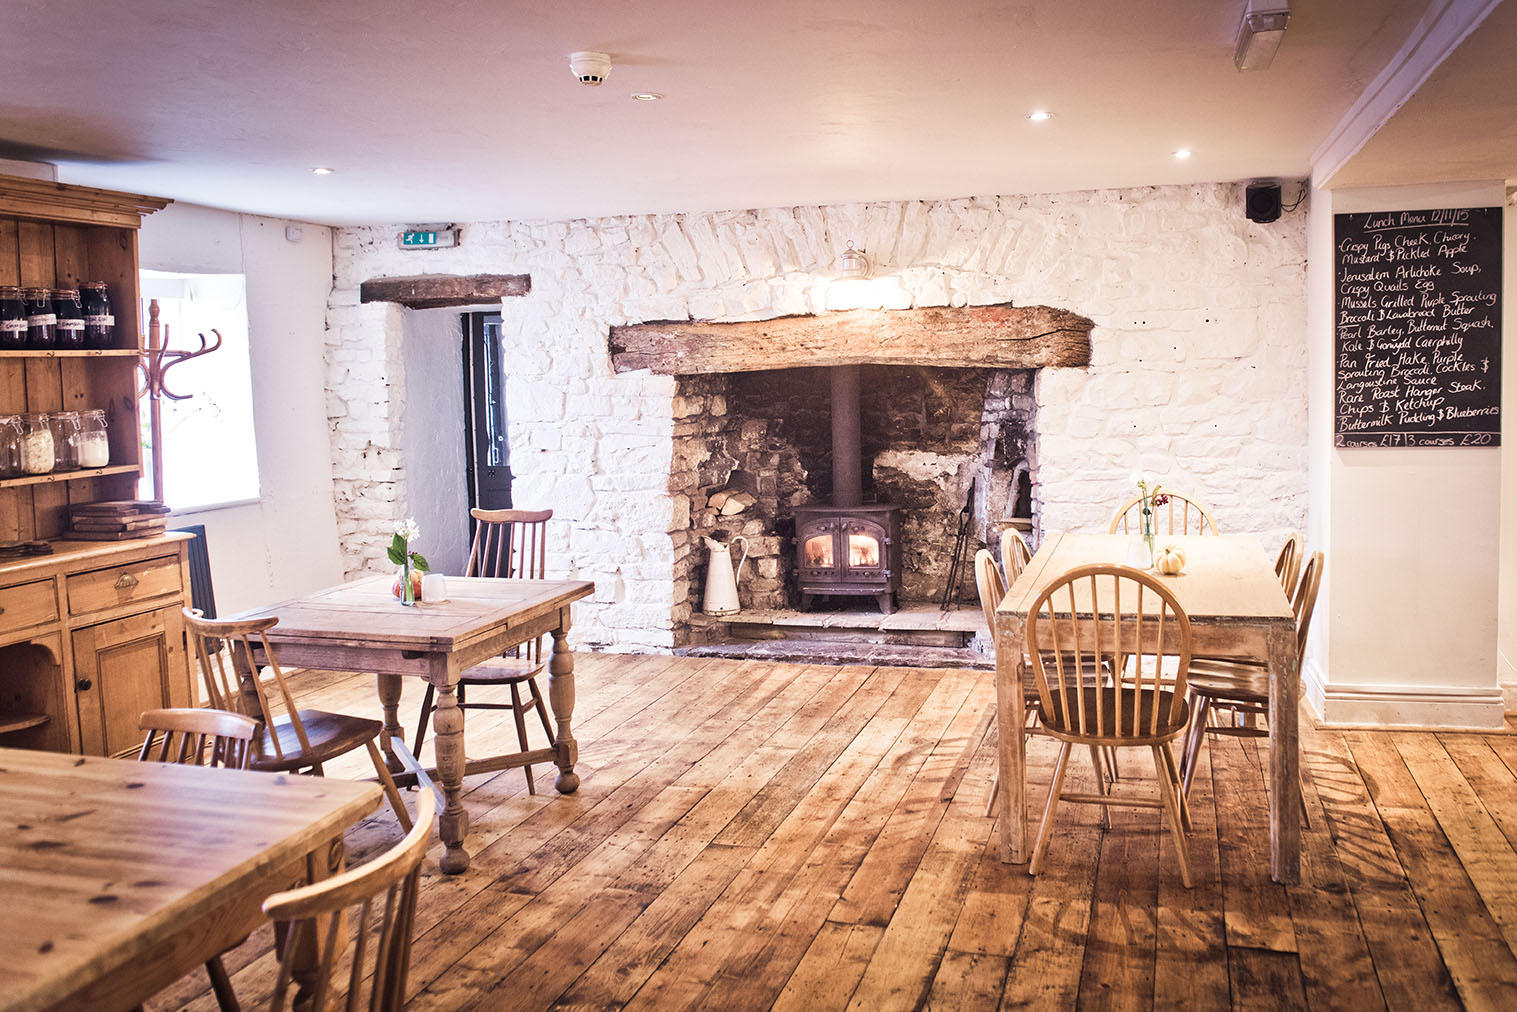 Hare and hounds dining room with wooden tables and chairs. Featuring a large fireplace